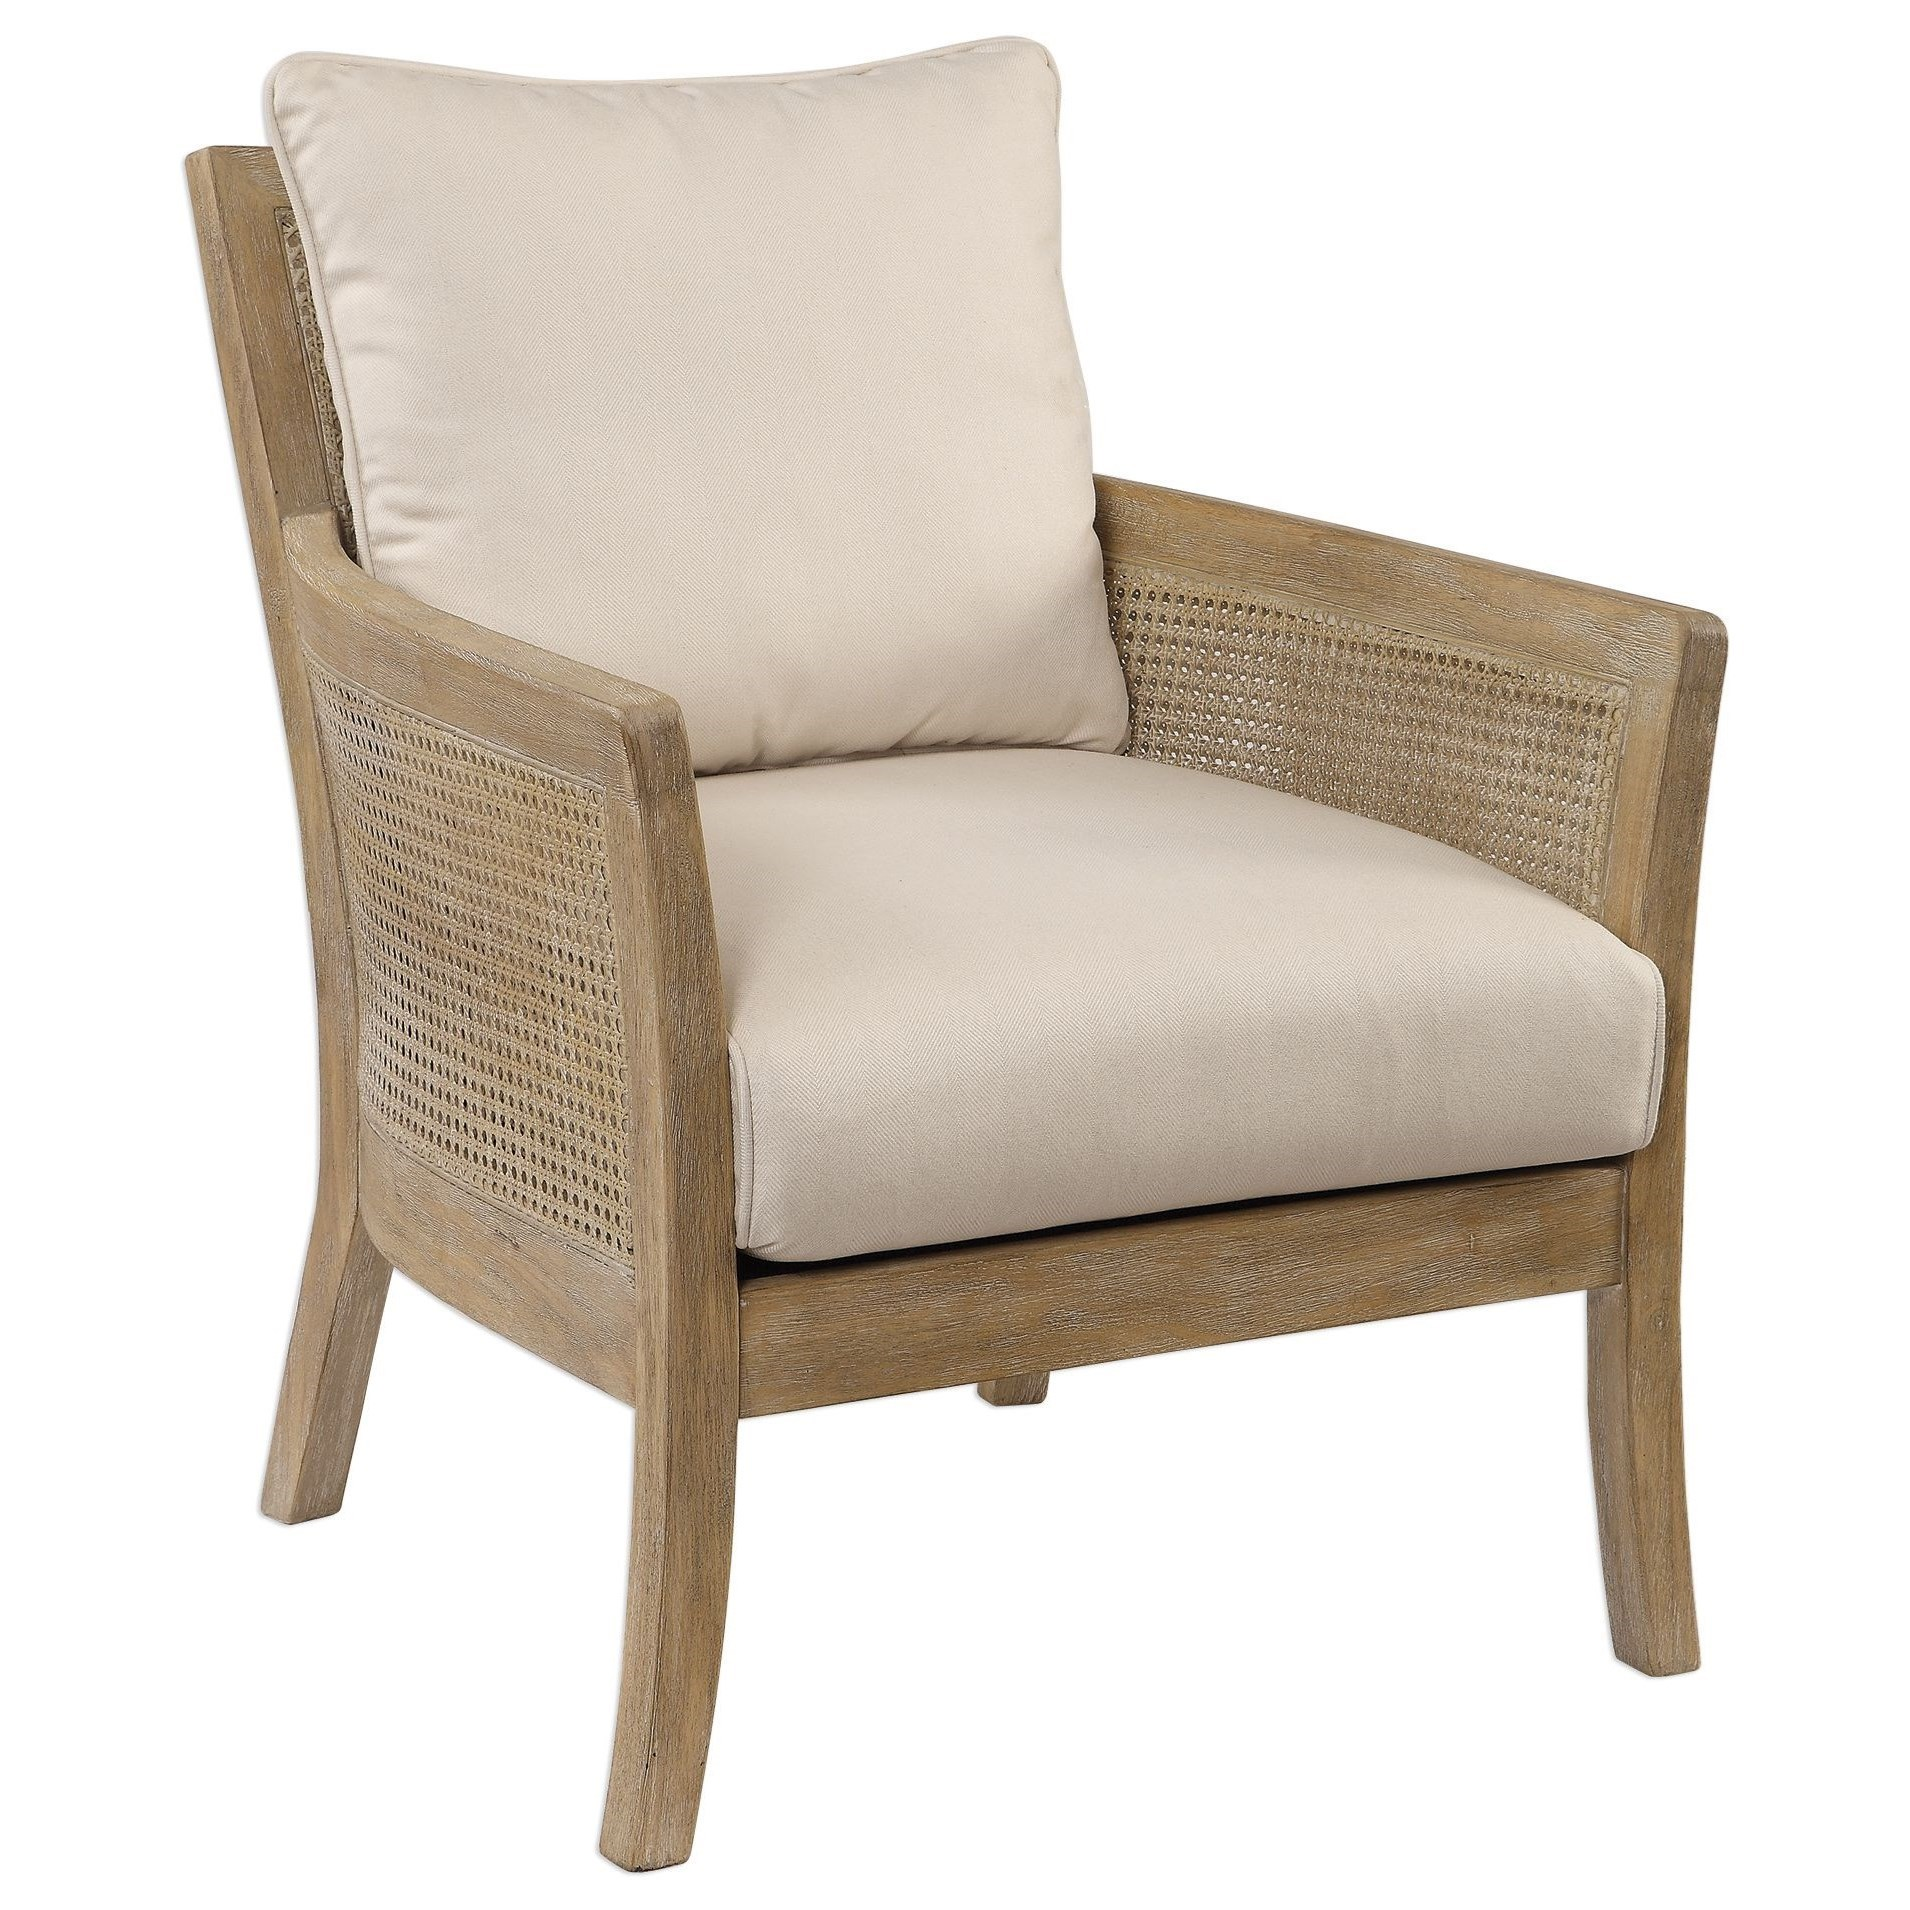 Accent Furniture - Accent Chairs Encore Natural Armchair by Uttermost at Upper Room Home Furnishings